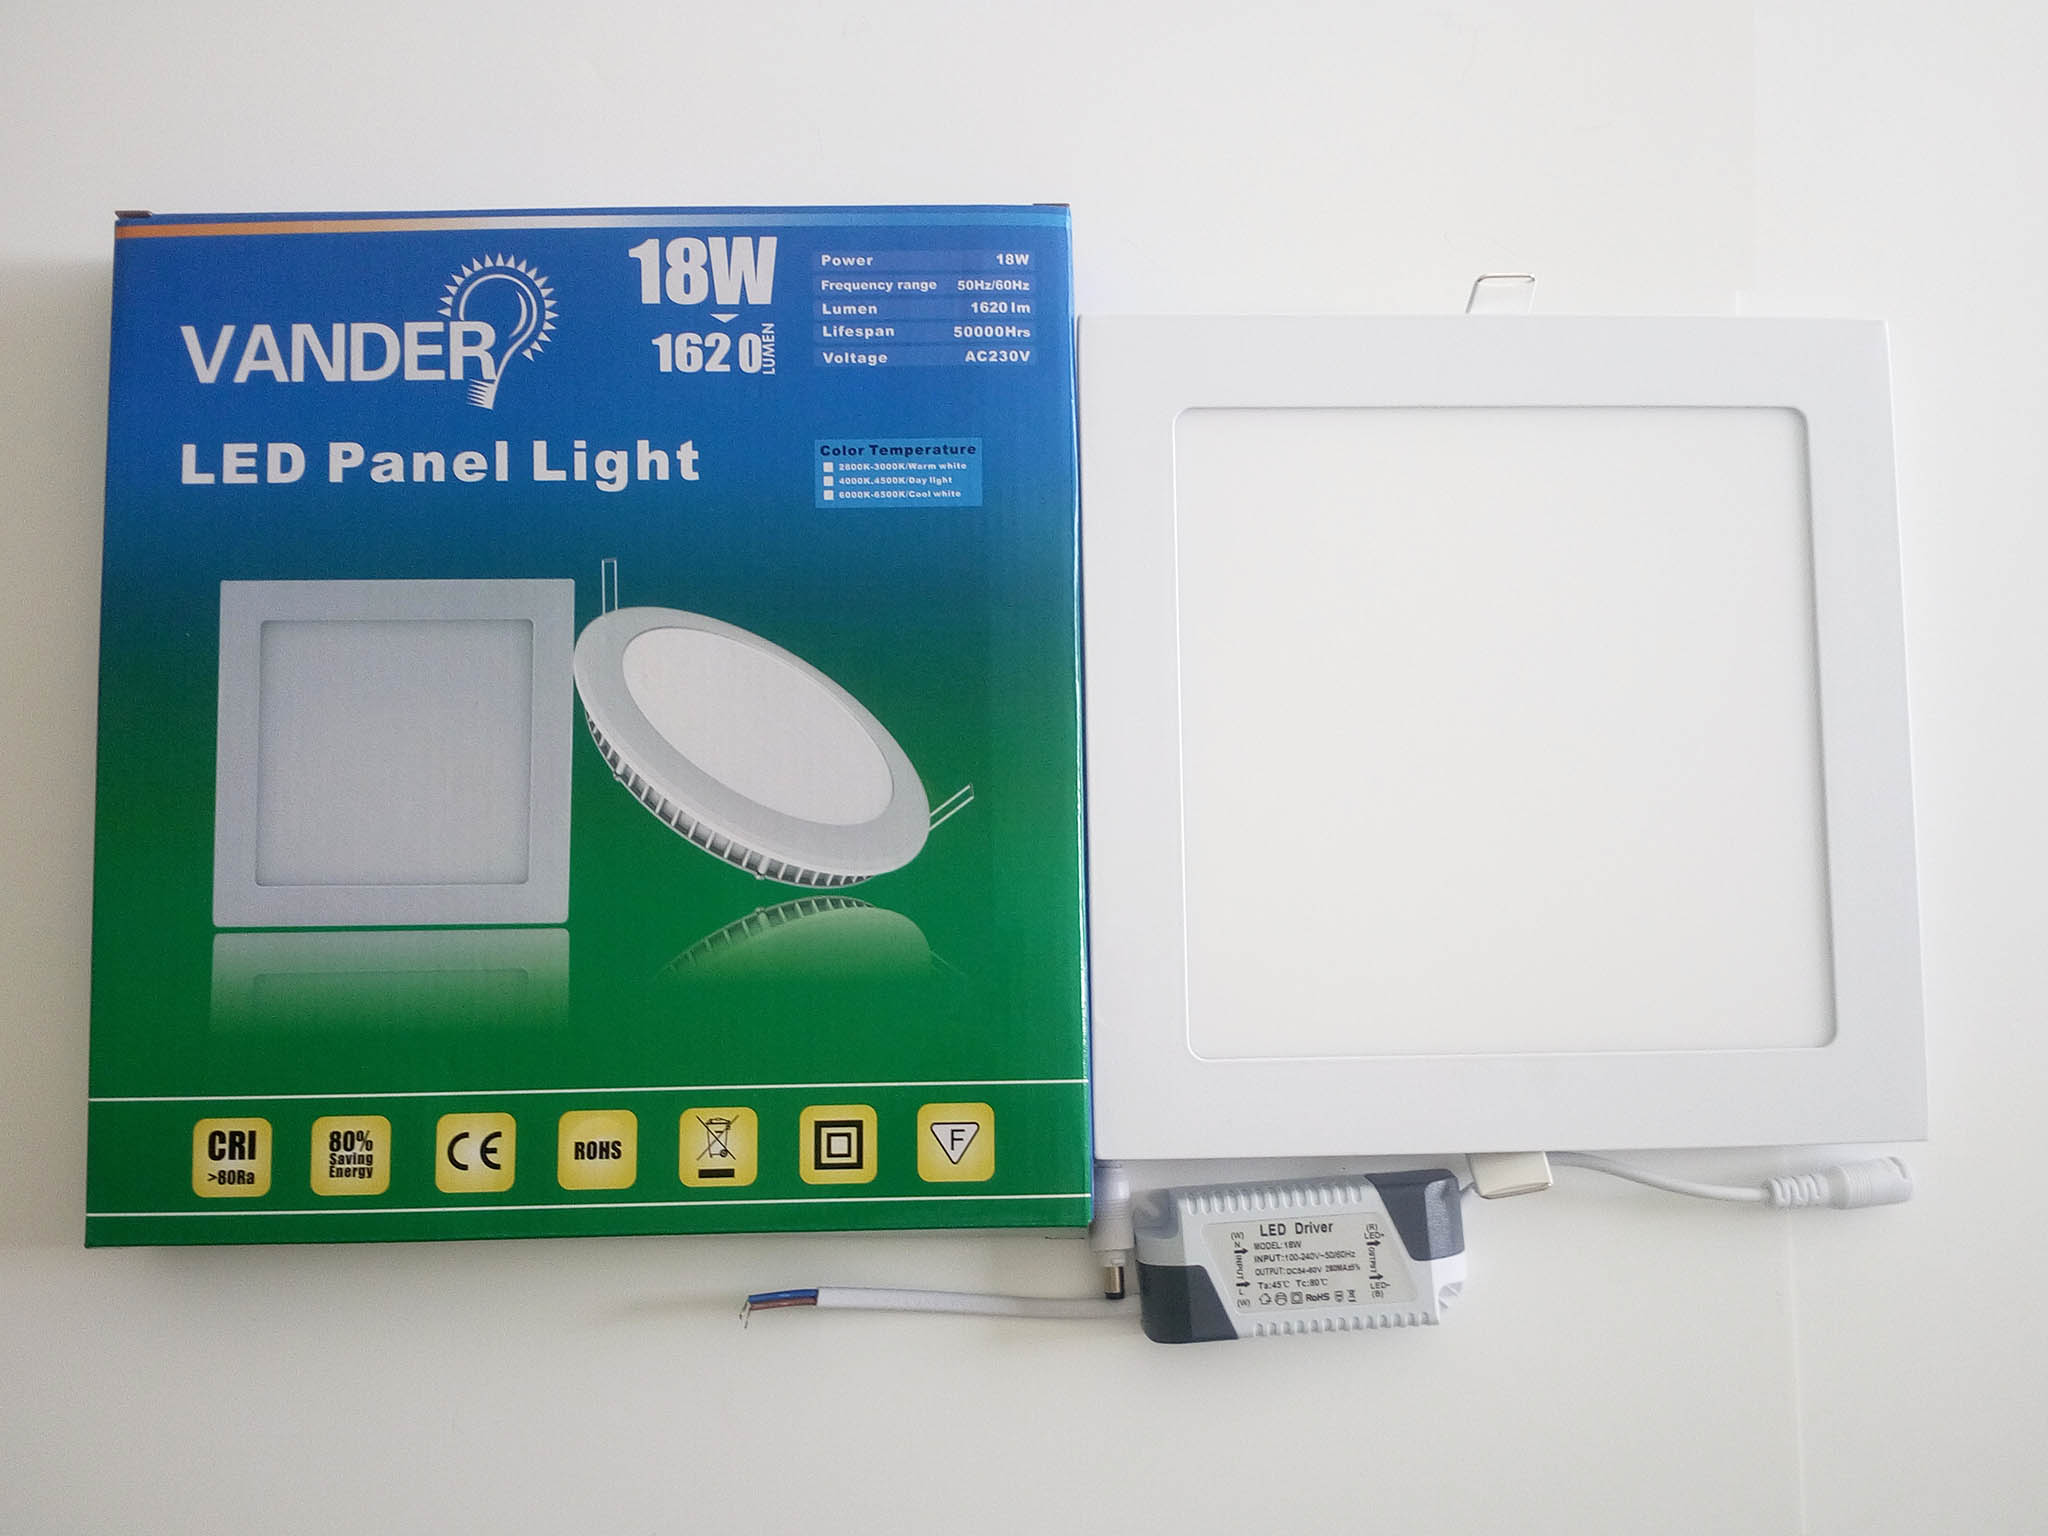 Colorful box package LED panel light 18W